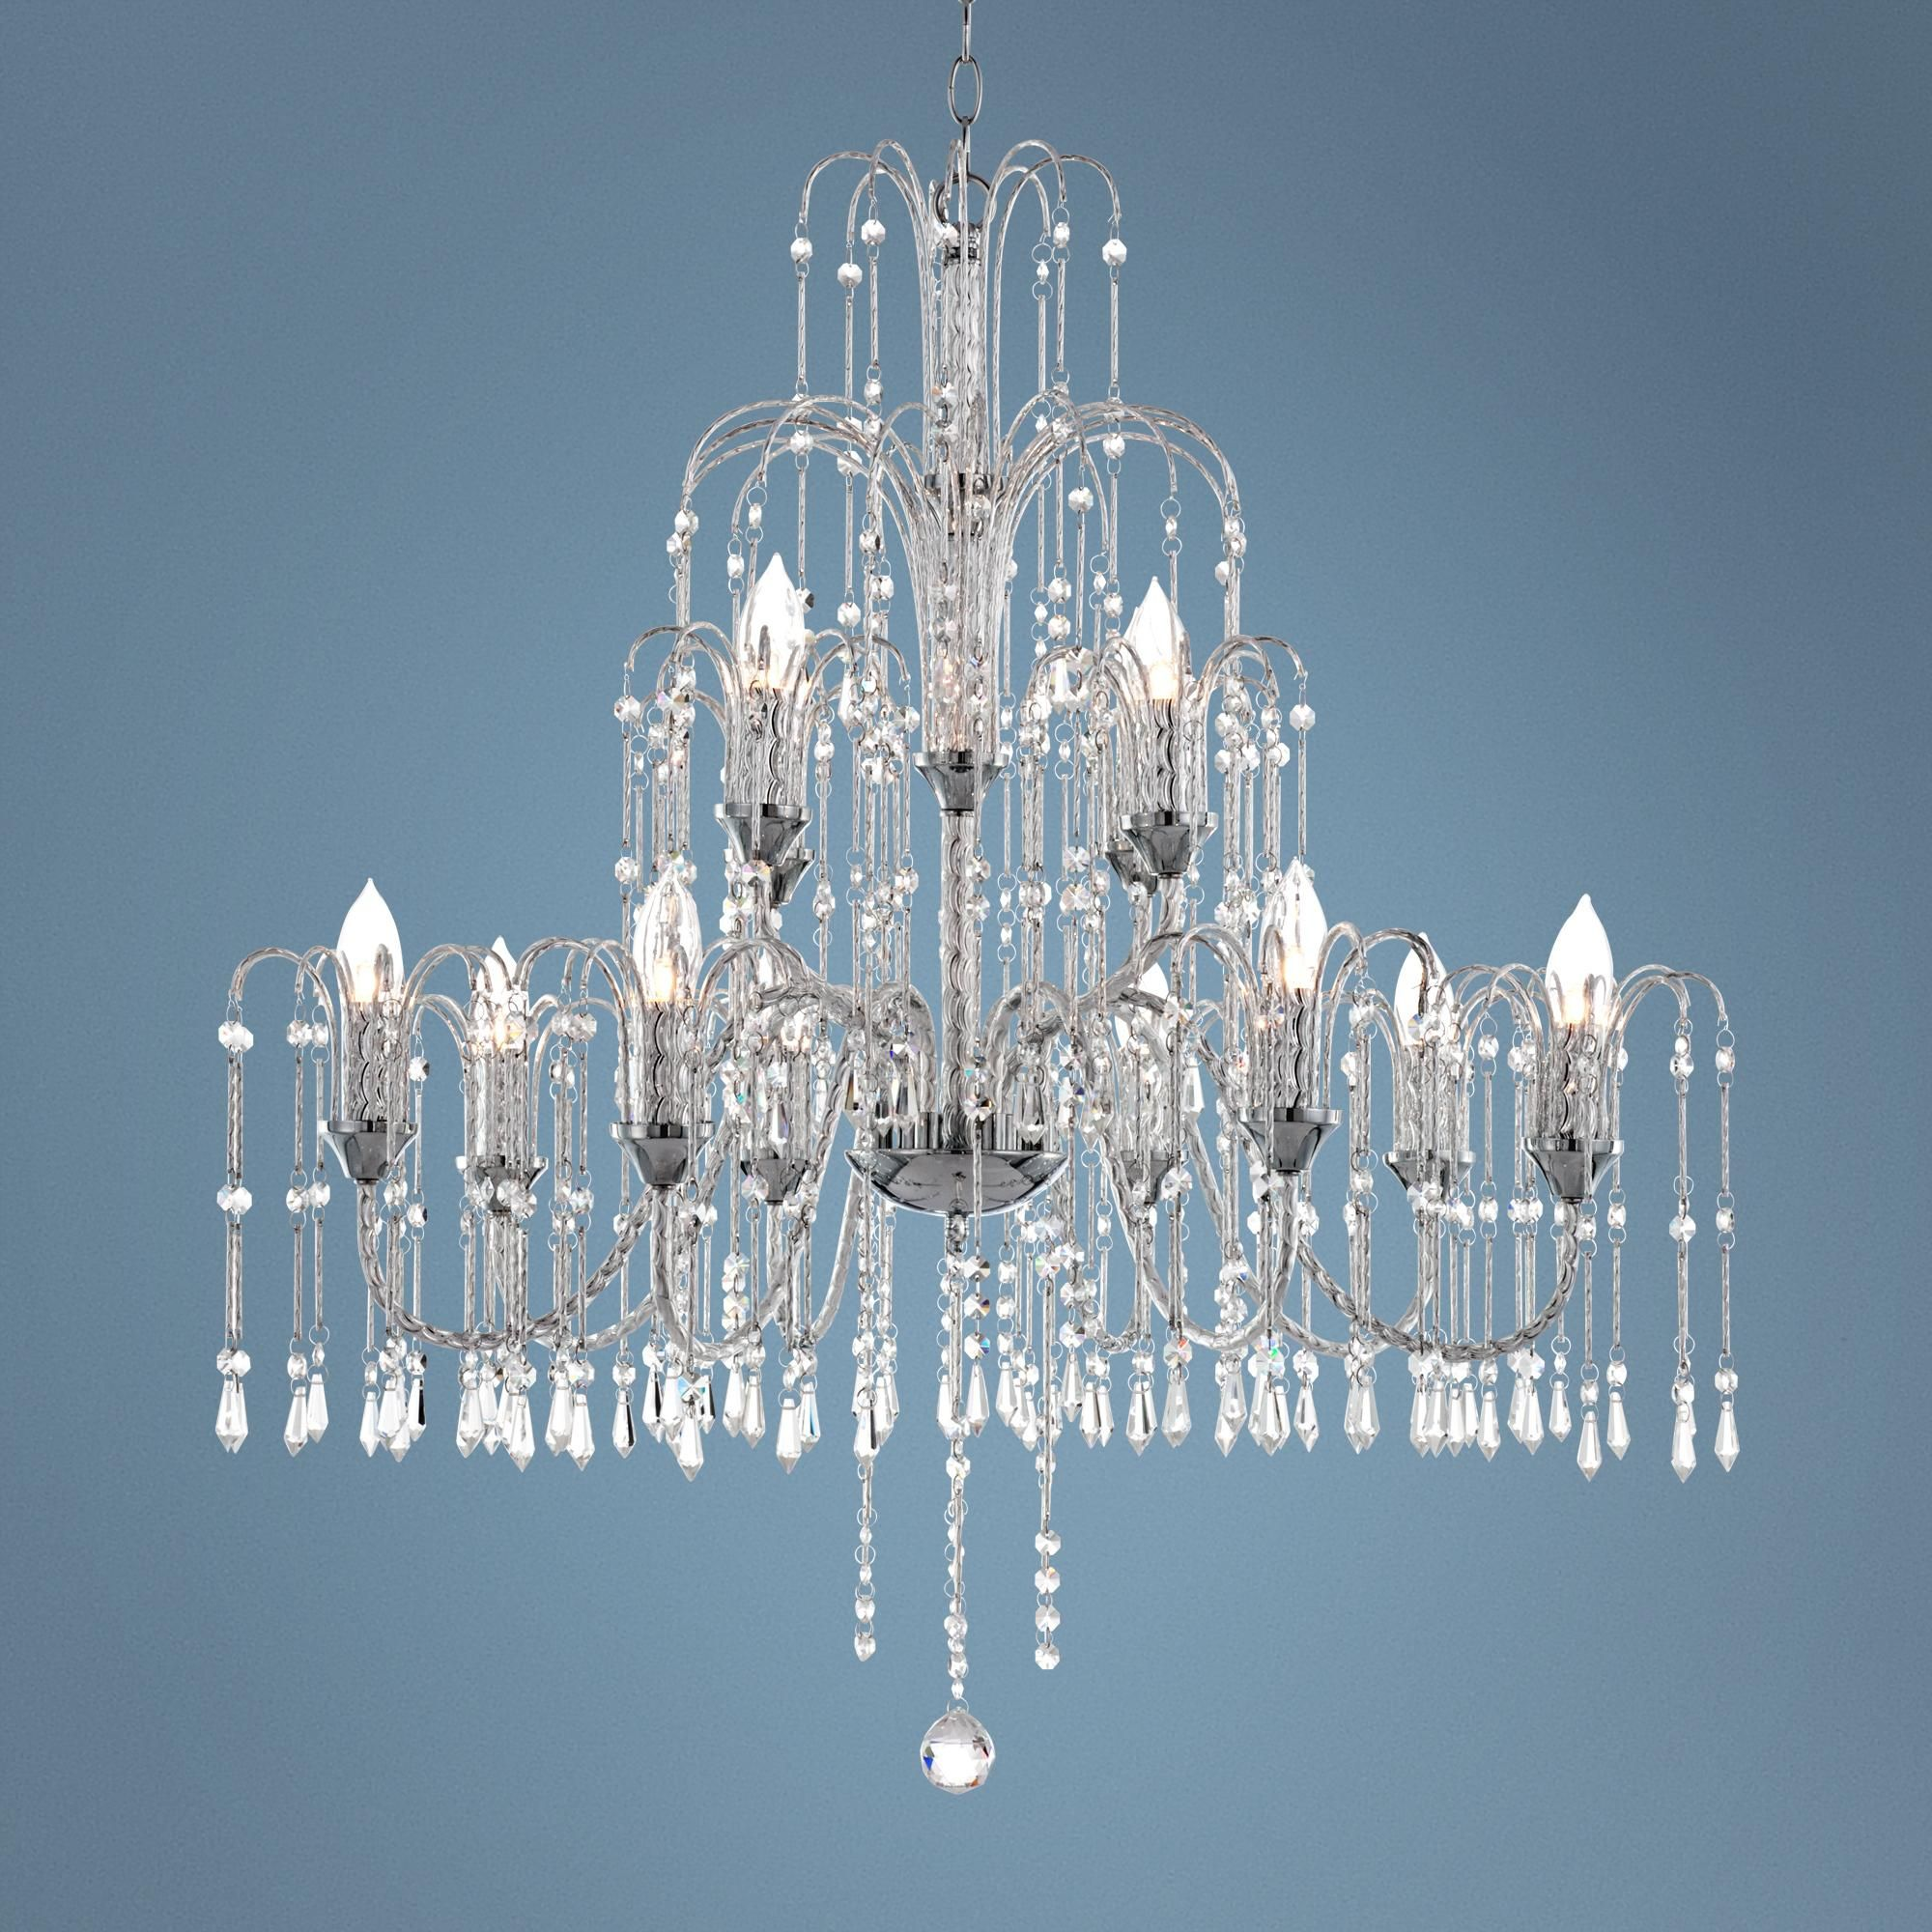 model lamp mtl furniture max fbx obj large models visual crystal comfort cube chandelier chandeliers